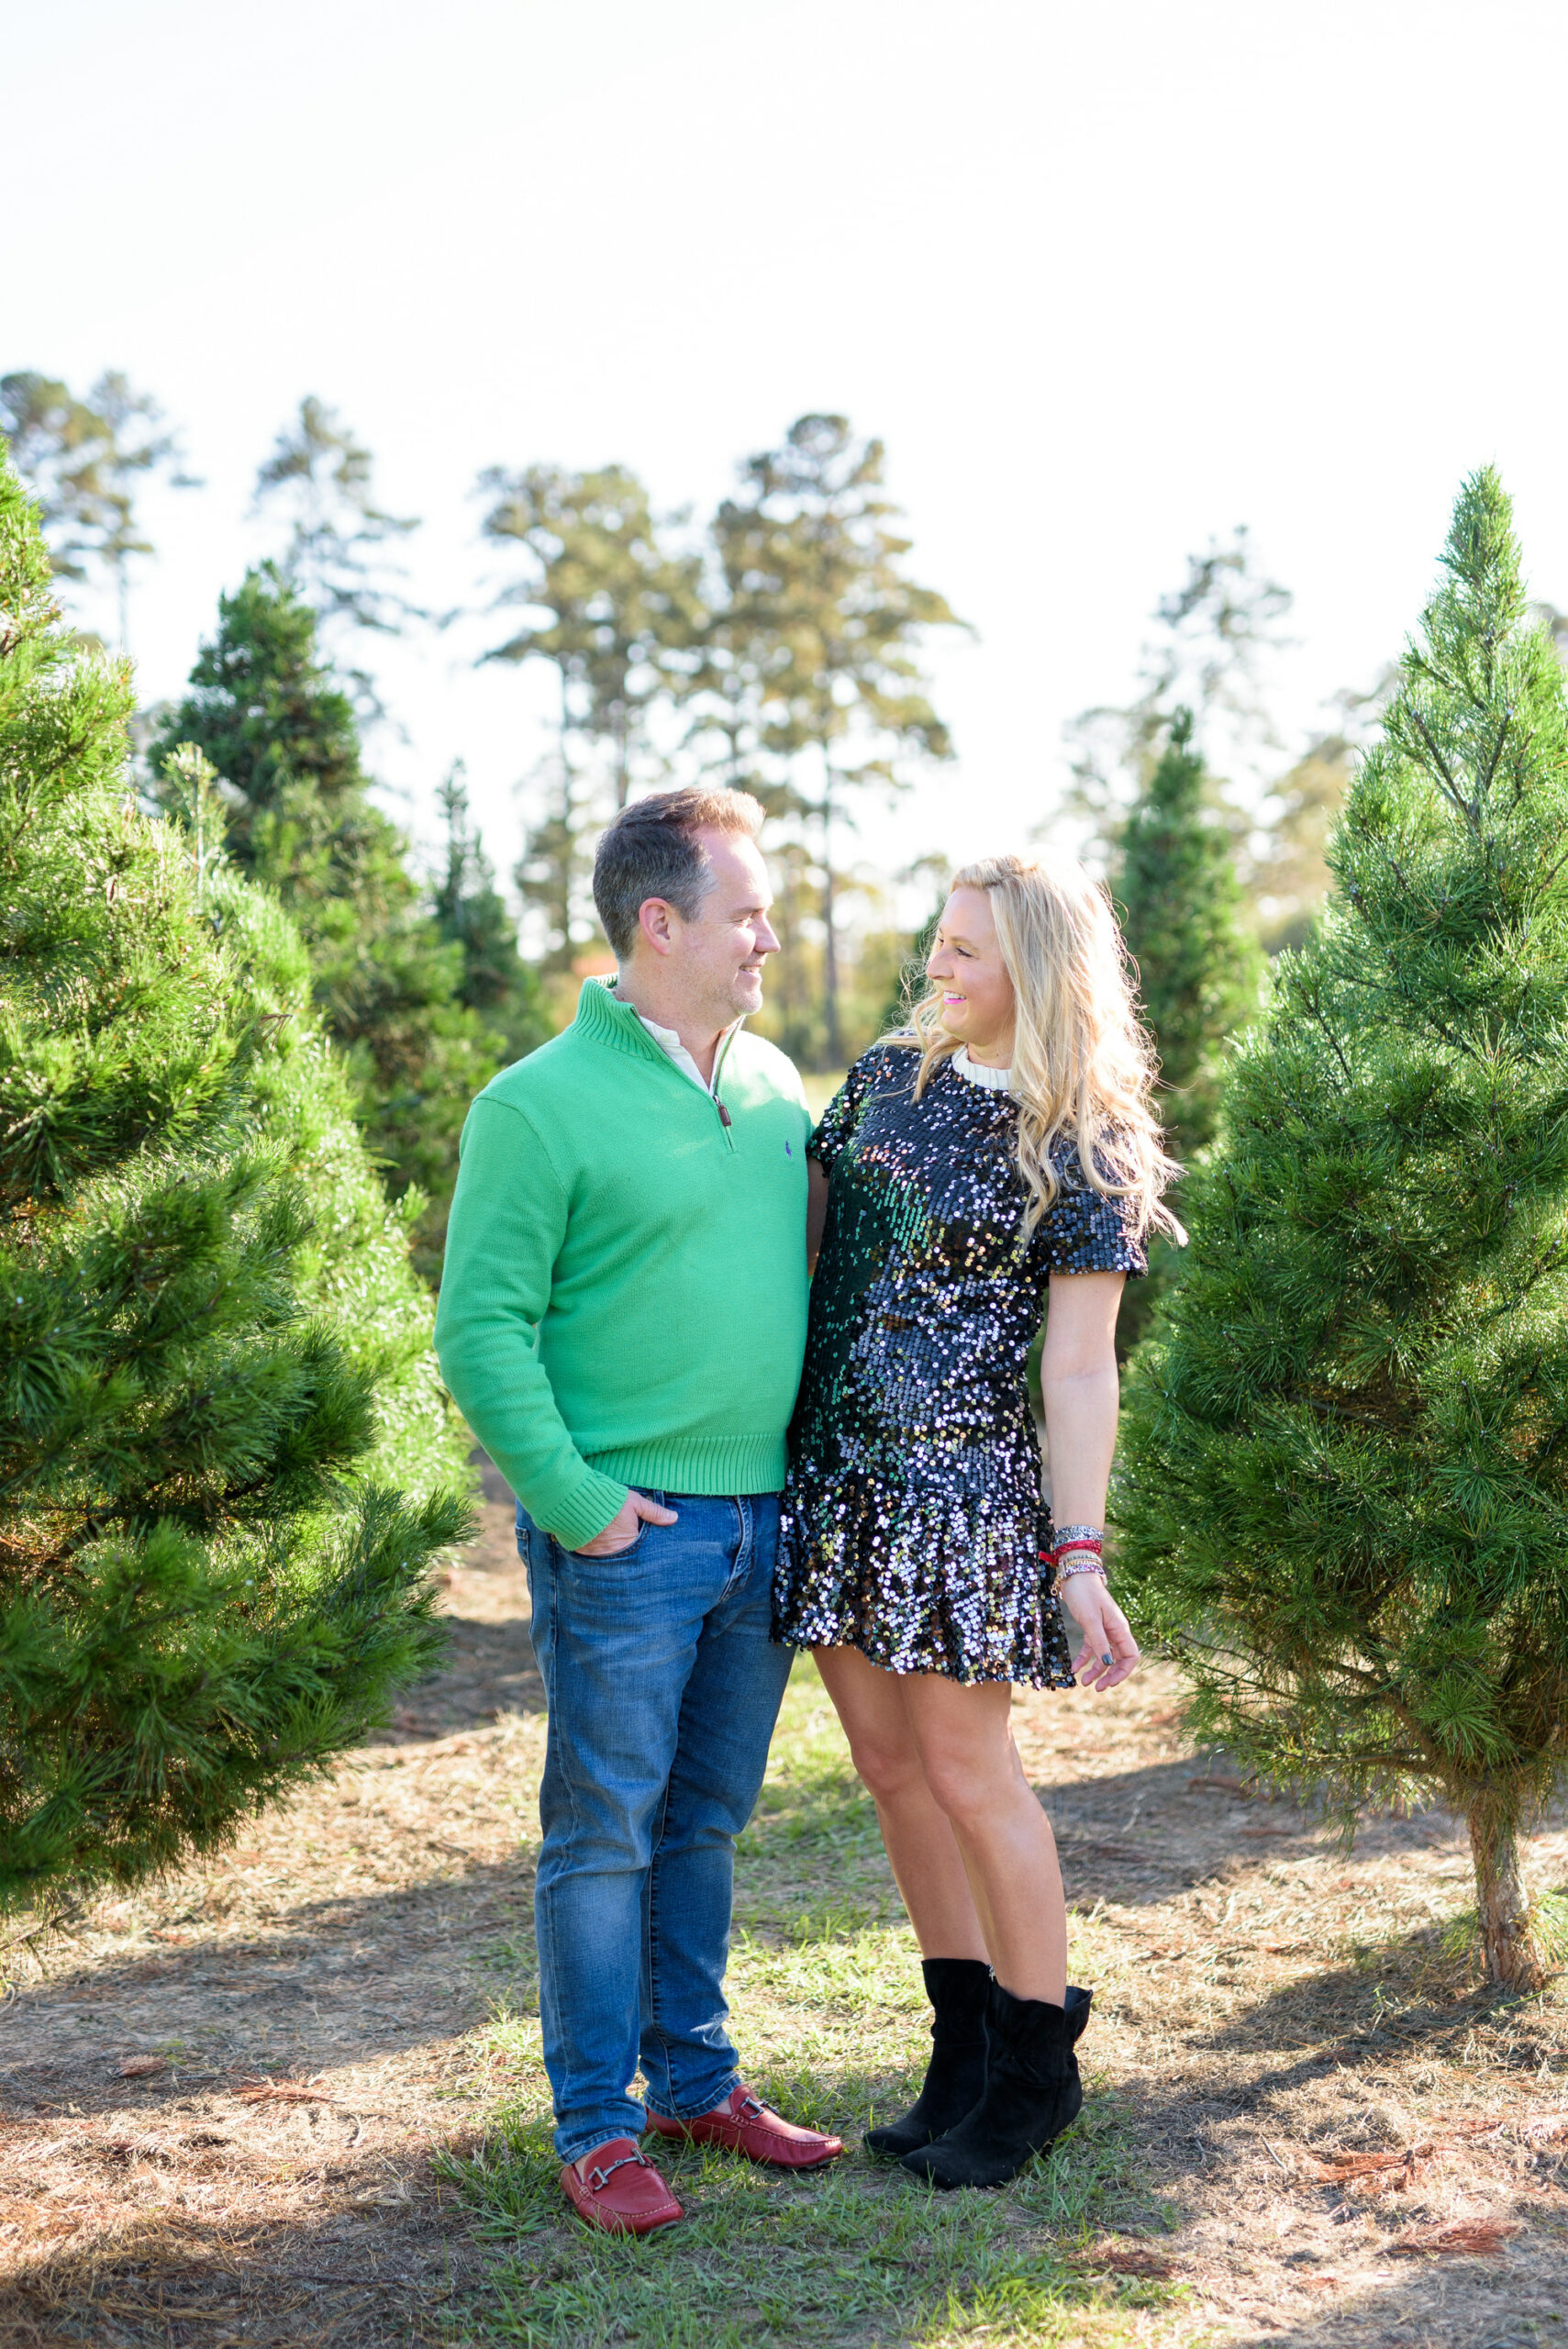 Christmas Tree Farm Photos by popular Houston lifestyle blog, Fancy Ashley: image of a husband and wife standing together in a row of pine trees and wearing a black sequin dress, black suede ankle boots, jeans, red loafers, and green pull over sweater.